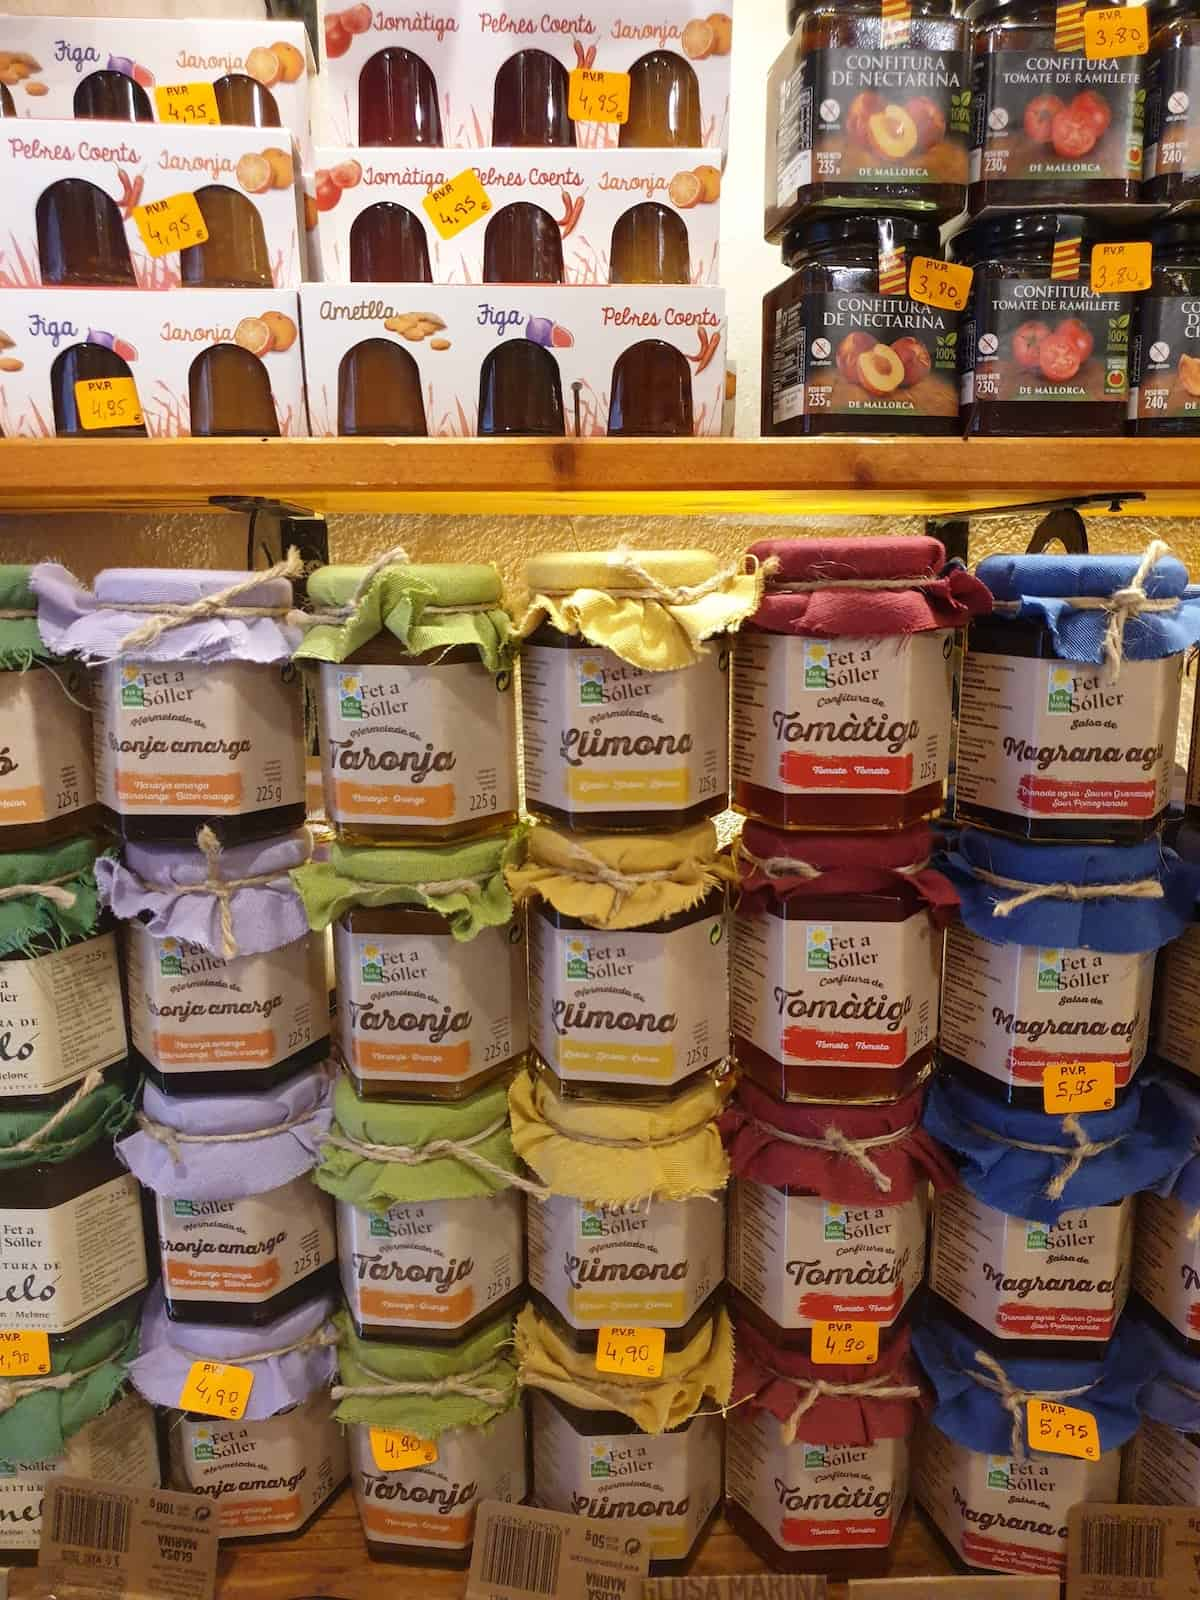 A selection of fruit marmalades and confits with labels in the Mallorcan language on display at a store.